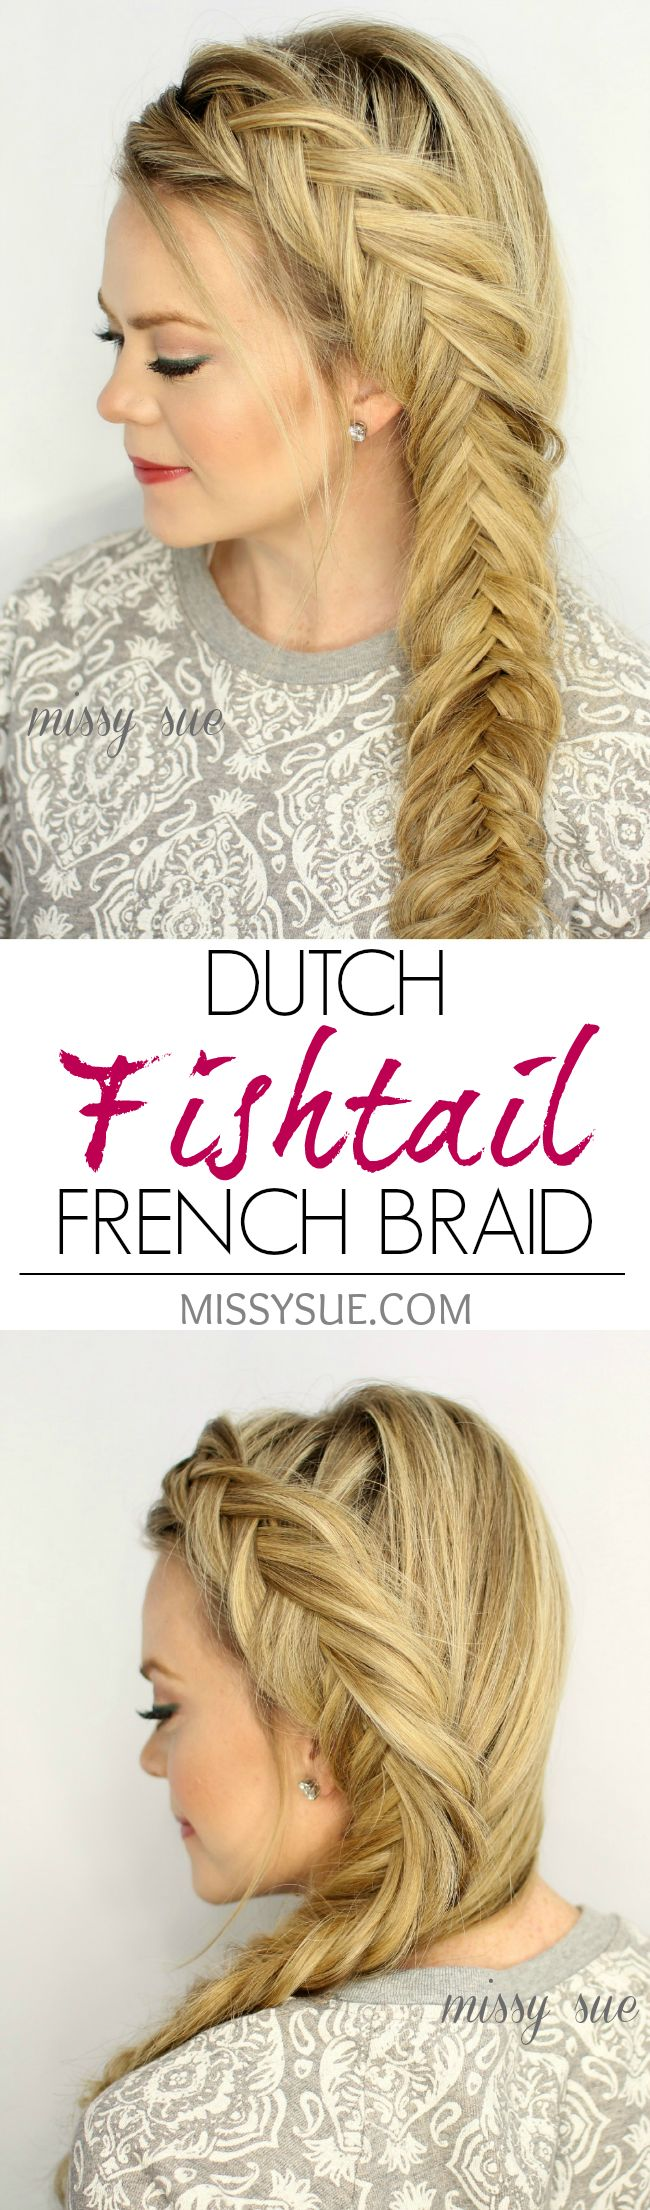 Dutch Fishtail French Braid for Long Hair